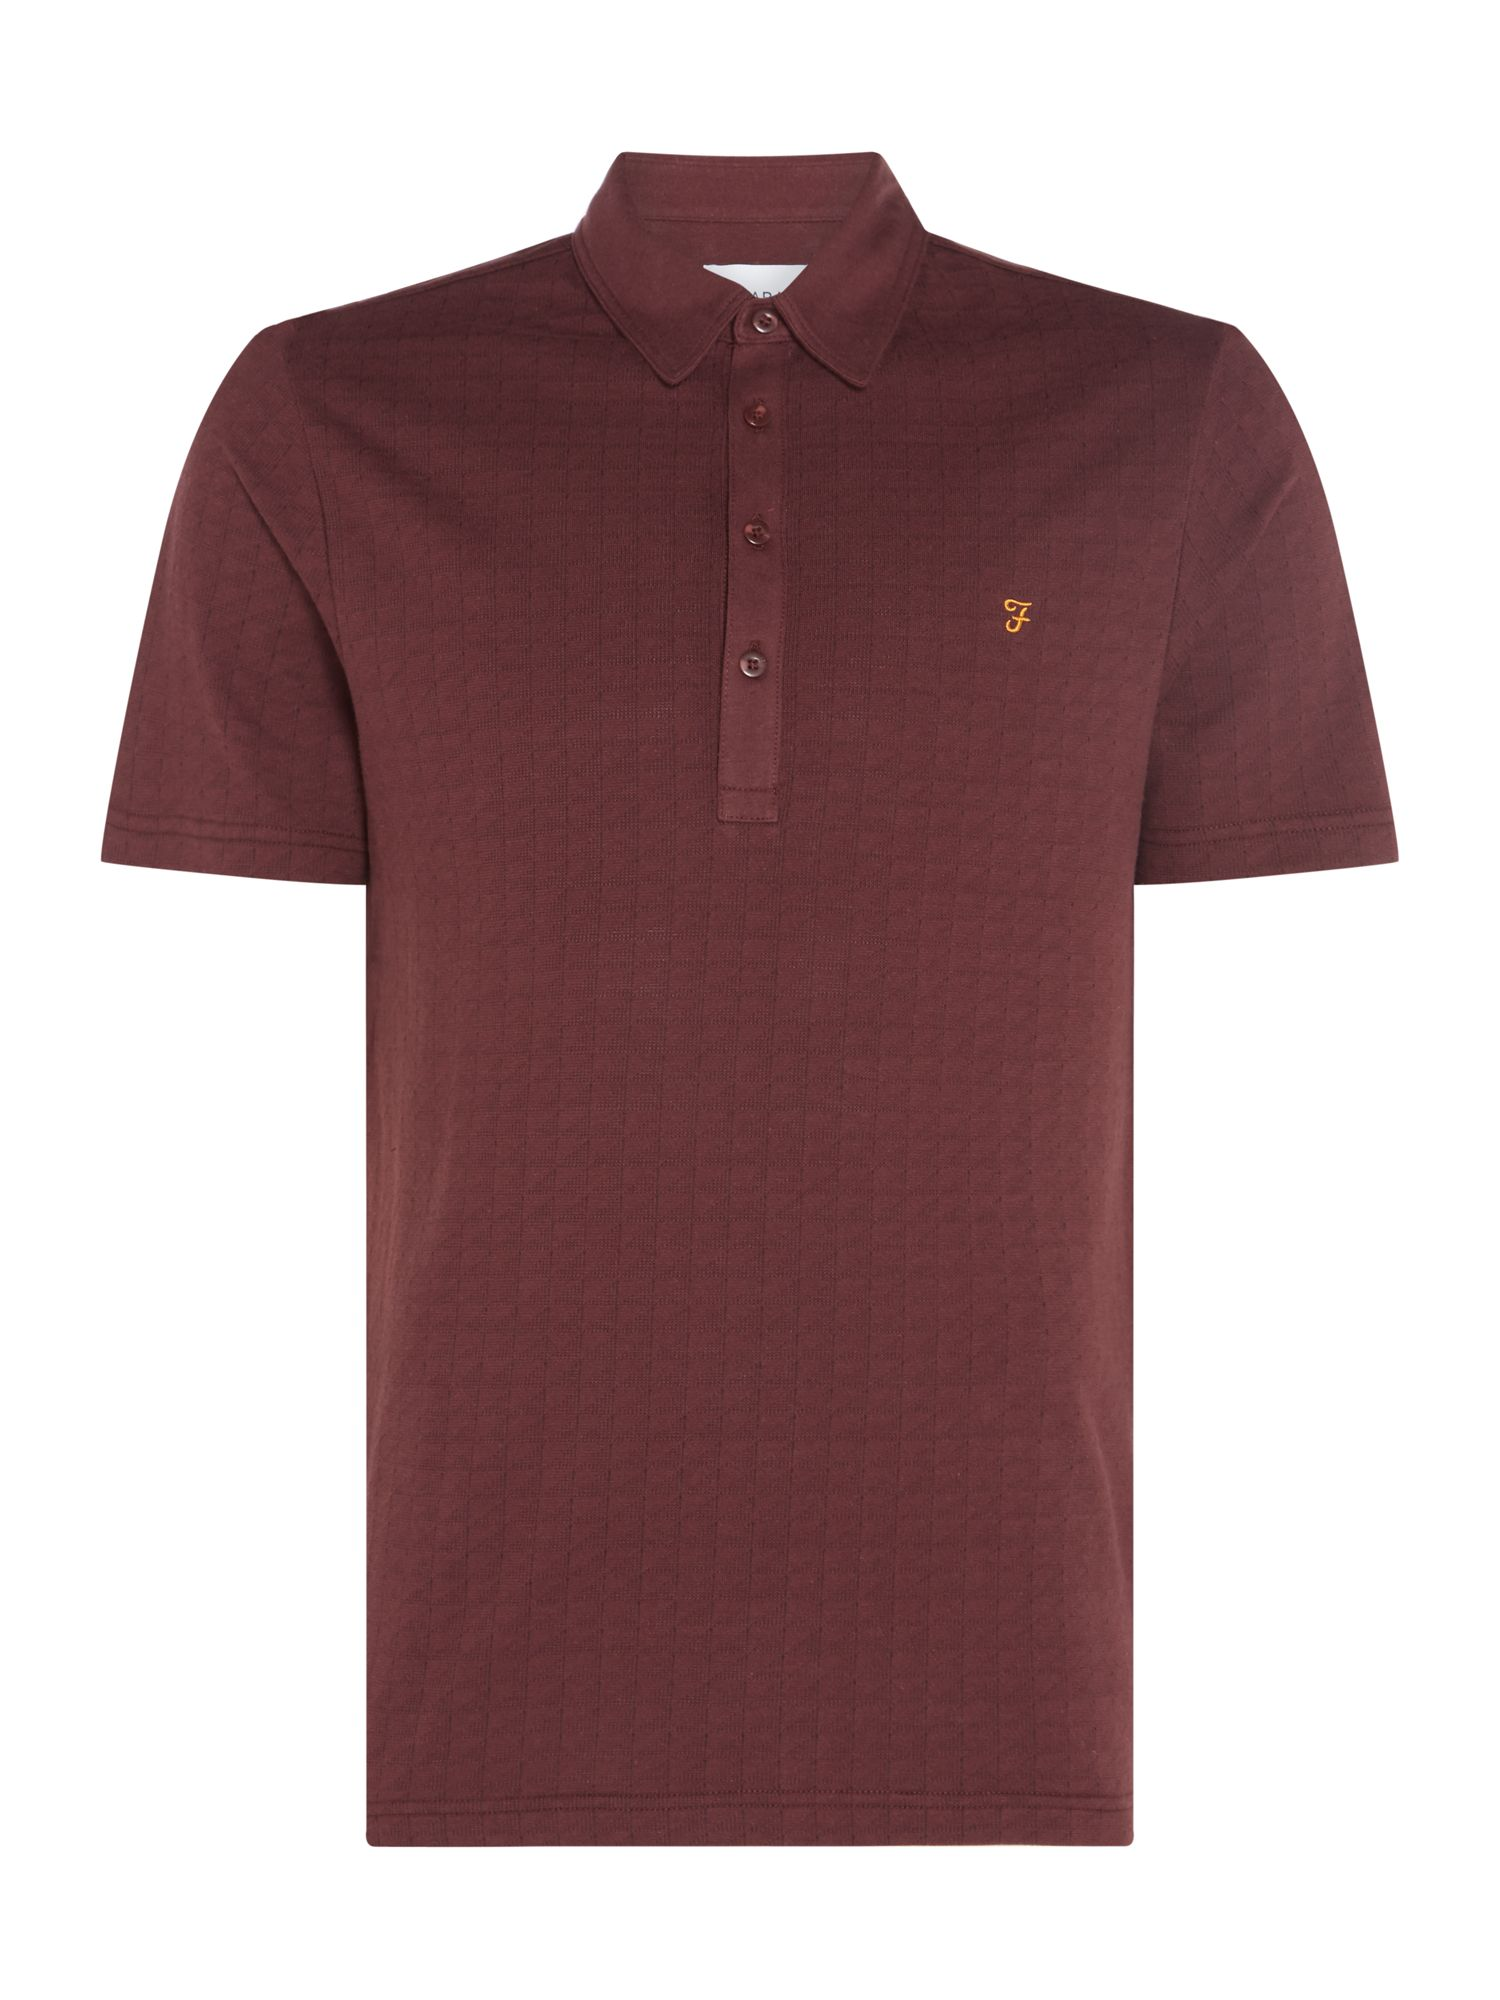 Men's Farah Chelsea Jacquard Short Sleeve Polo, Red